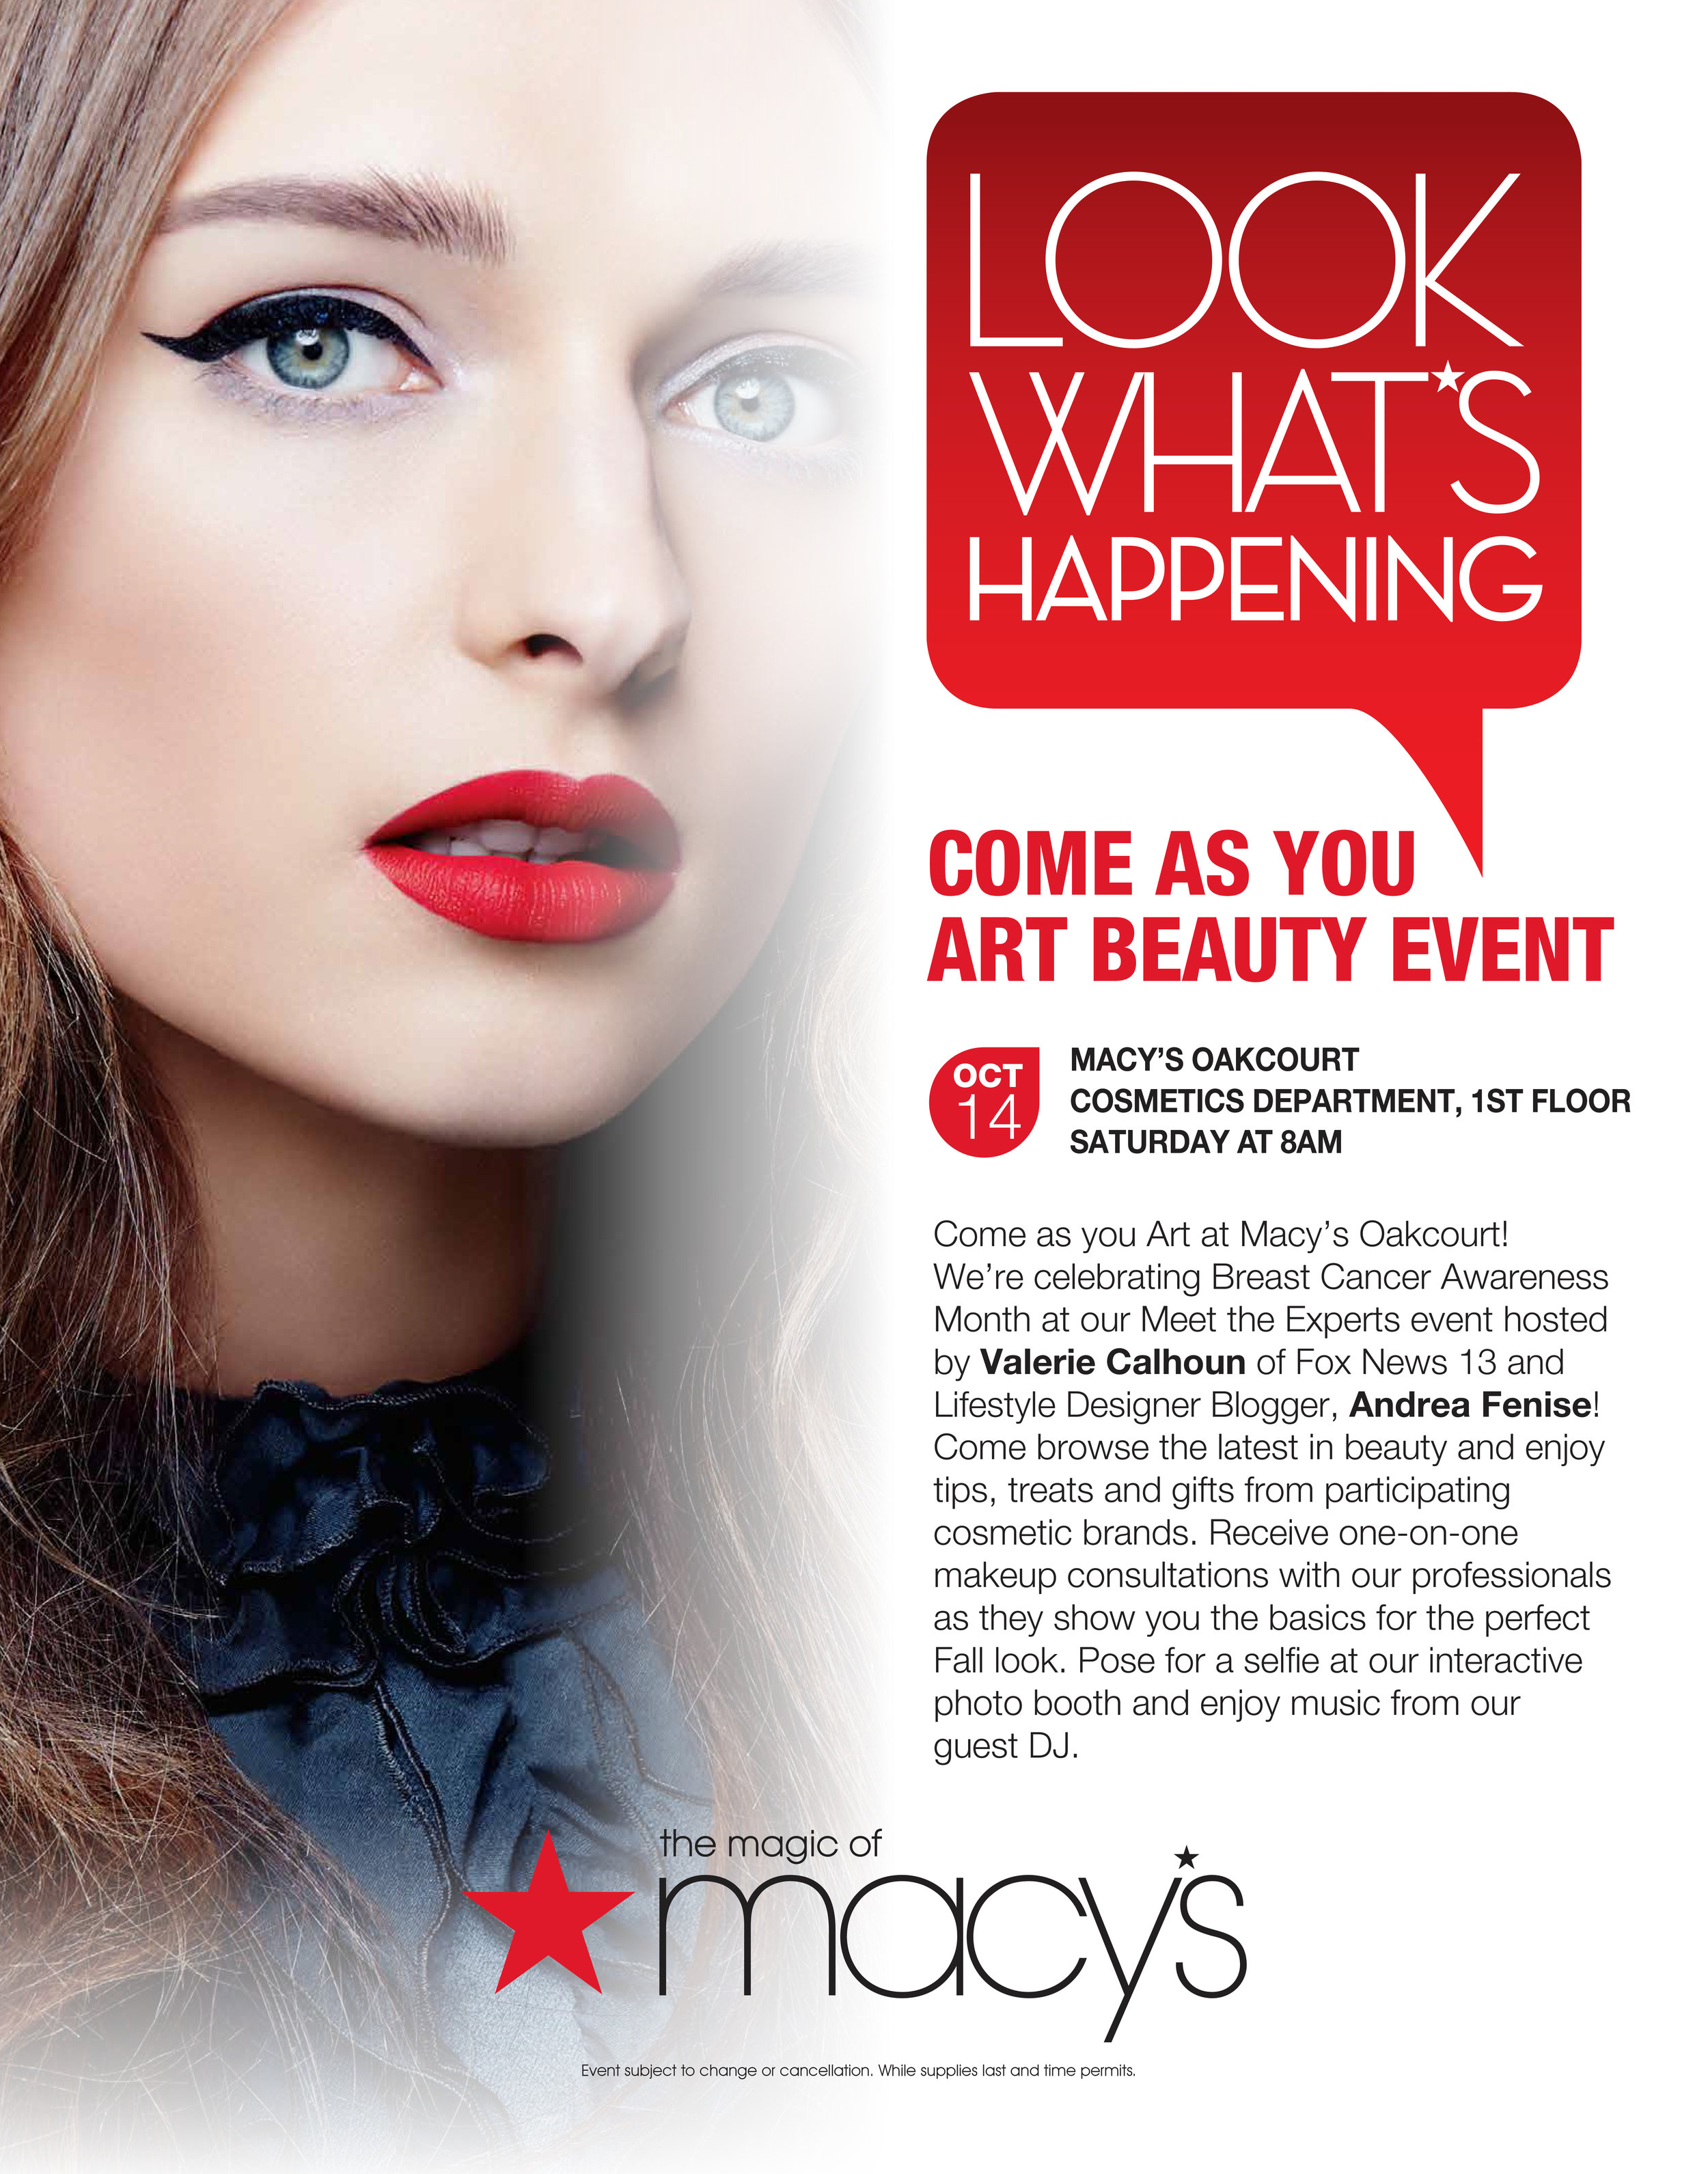 Andrea Fenise Memphis Fashion Blogger hosts Macy's Beauty Event Come As You Art 10.14.17